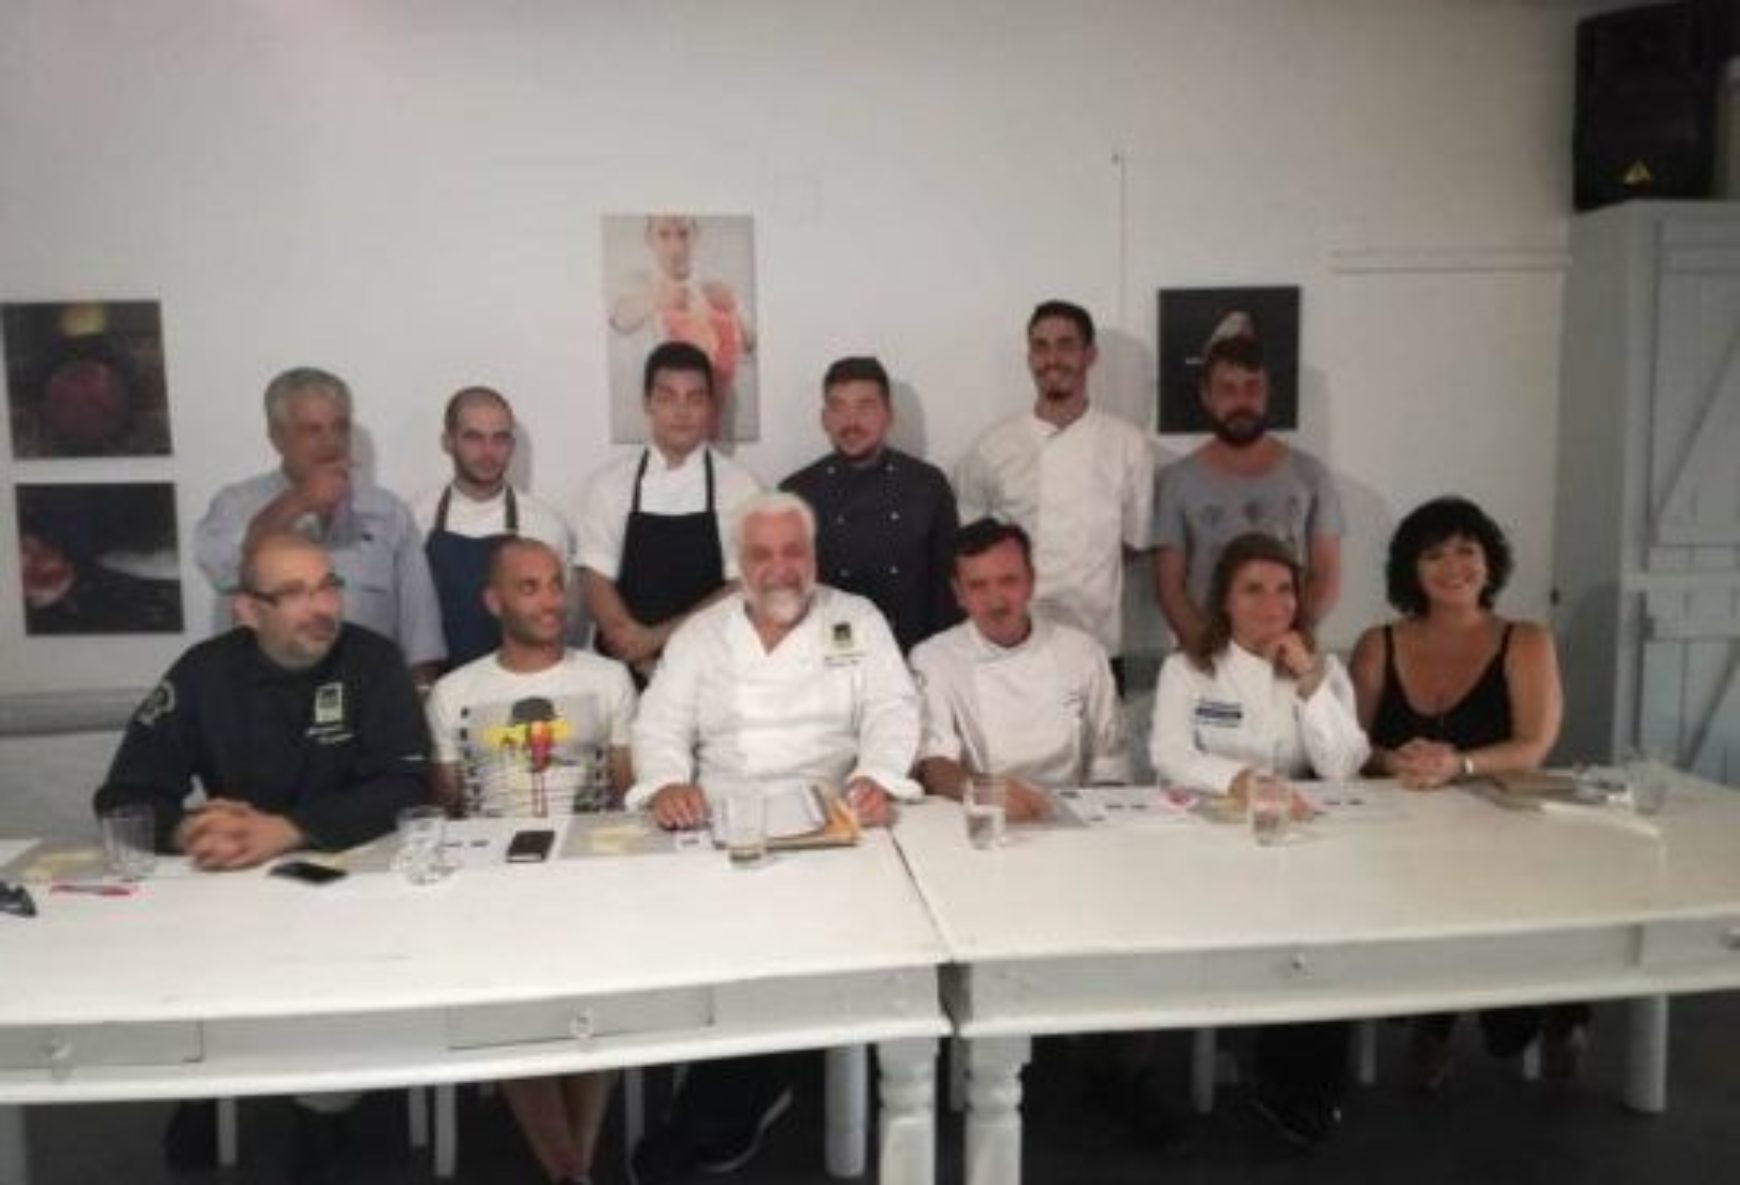 South Aegean European Region of Gastronomy has selected their finalist for the 2018 European Young Chef Award